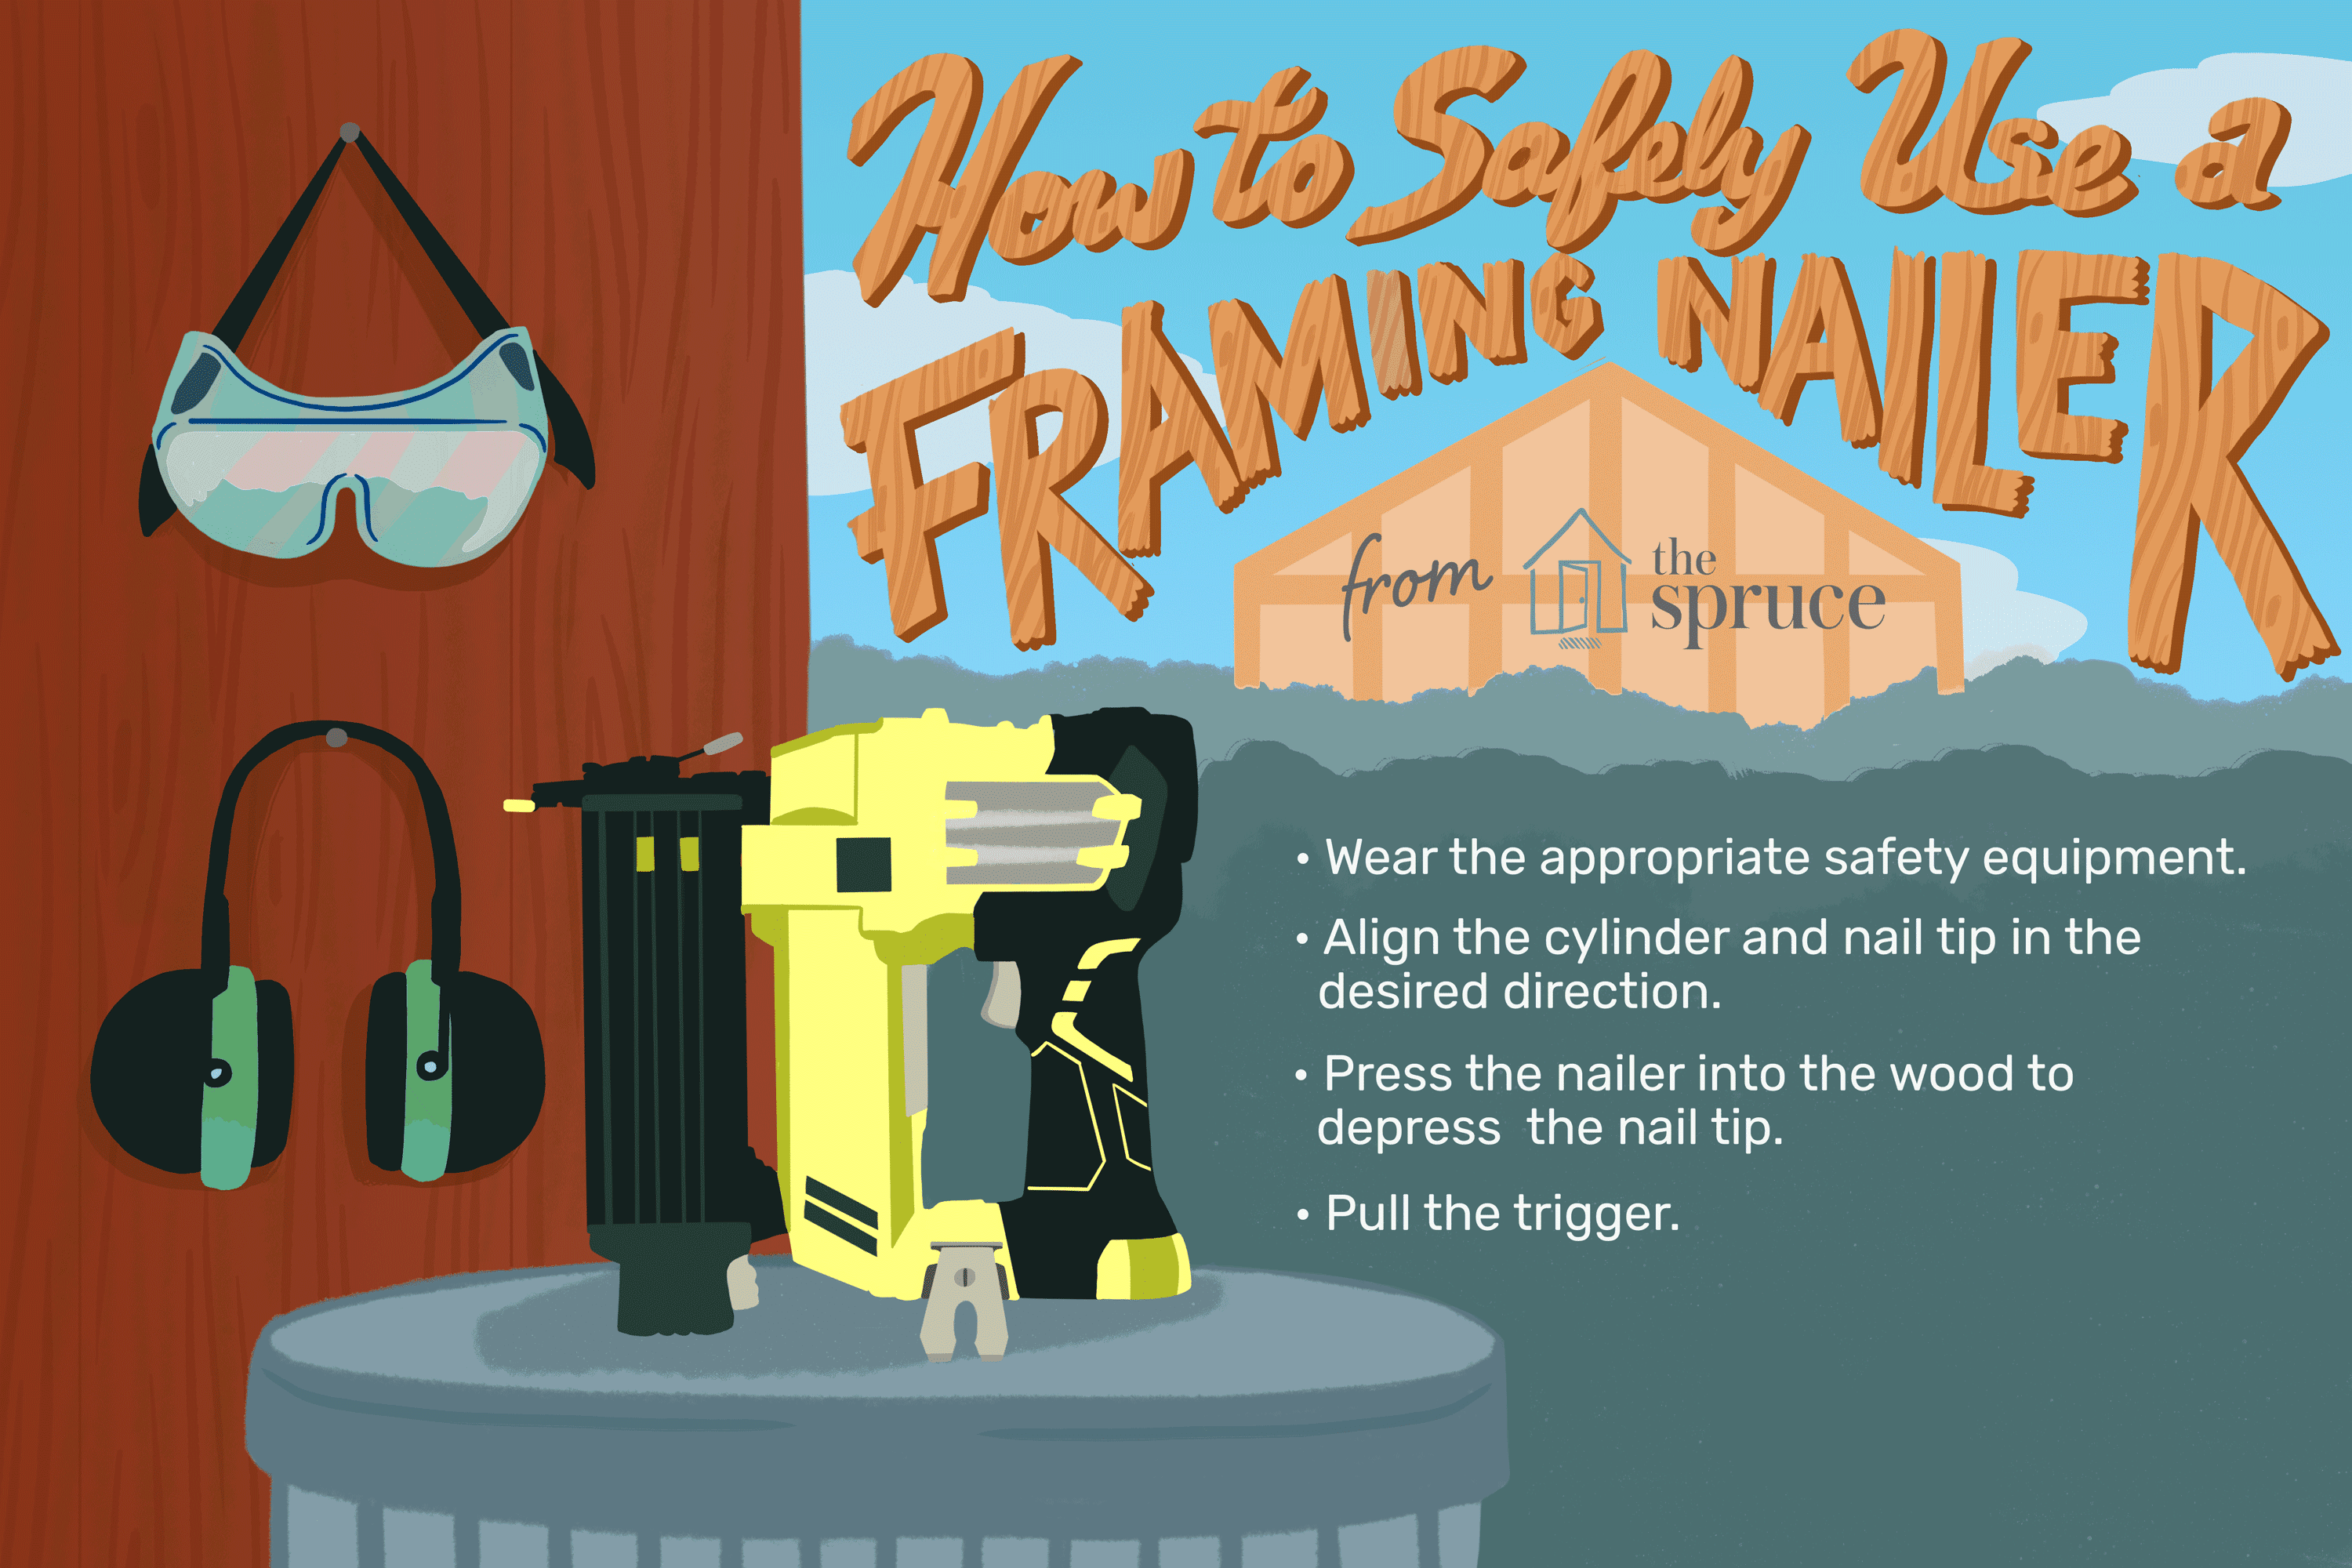 Illustration of how to use a framing nailer